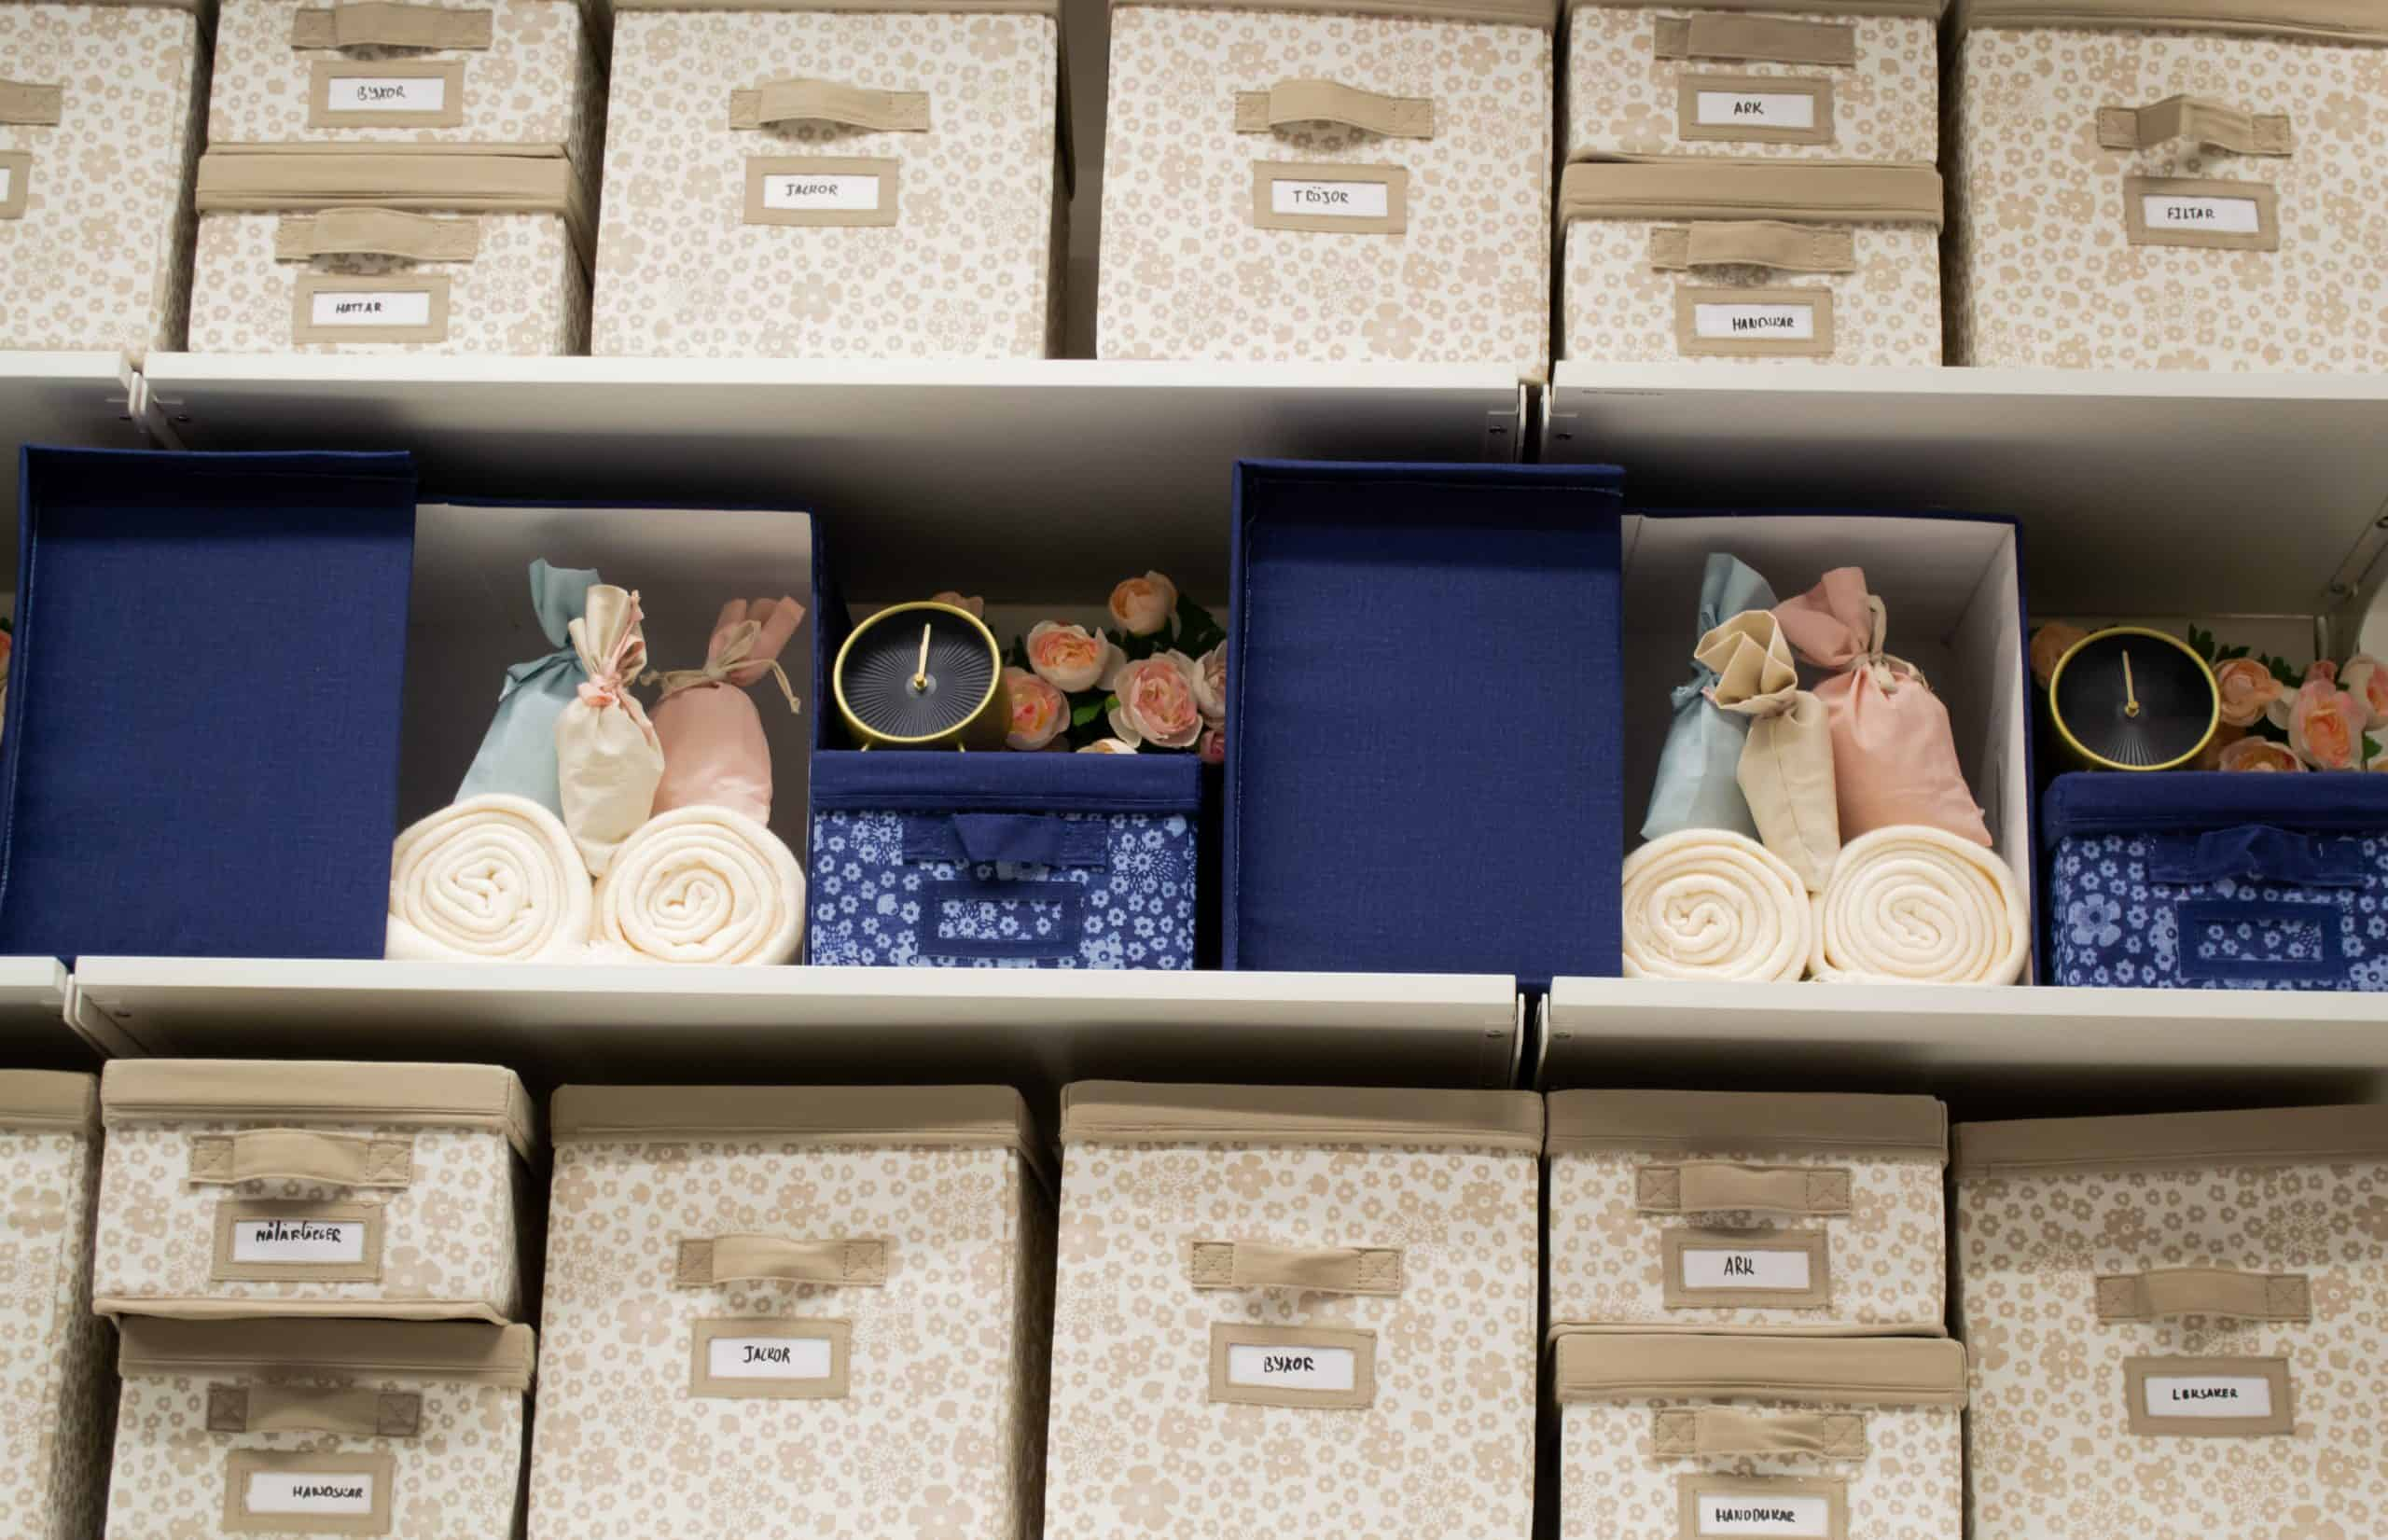 How to organize gift closet - photo of beige and blue textile storage boxes in a closet